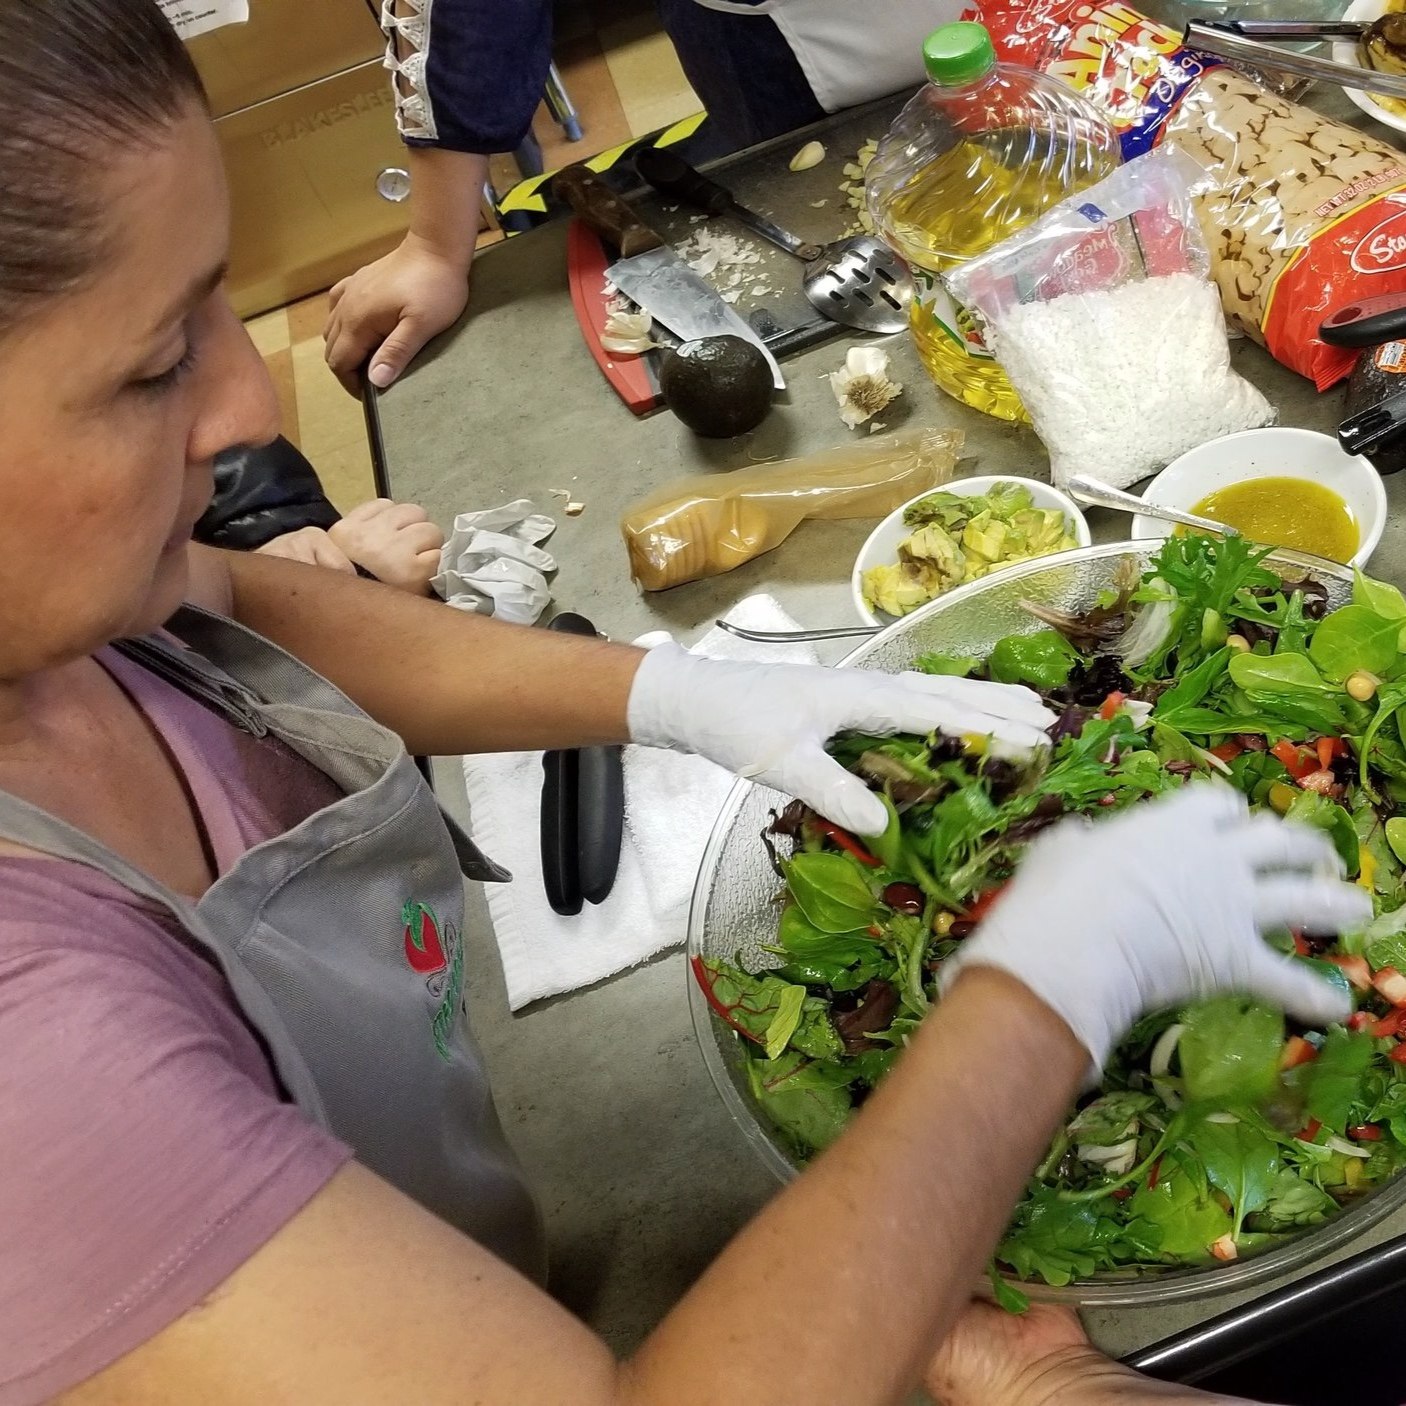 Nutrition and Cooking Classes: - Using food available that day in the Market, Metro Caring offers cooking classes in Spanish and English featuring healthy recipes that community members can try at home. Diabetes self-management and prevention programs are also available.